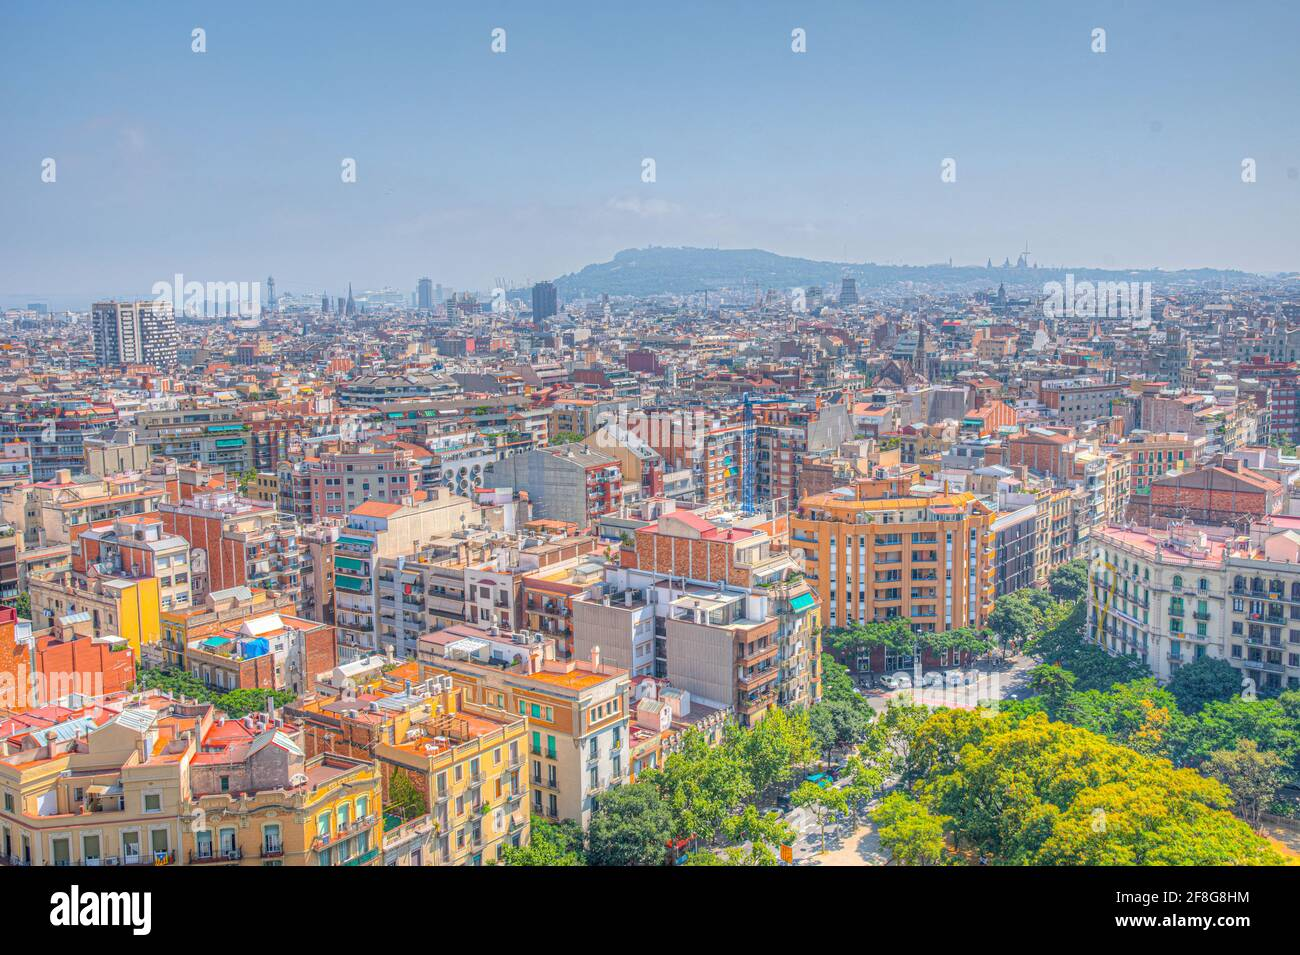 Aerial view of the ciutat vella of Barcelona from Sagrada Familia cathedral, Spain Stock Photo